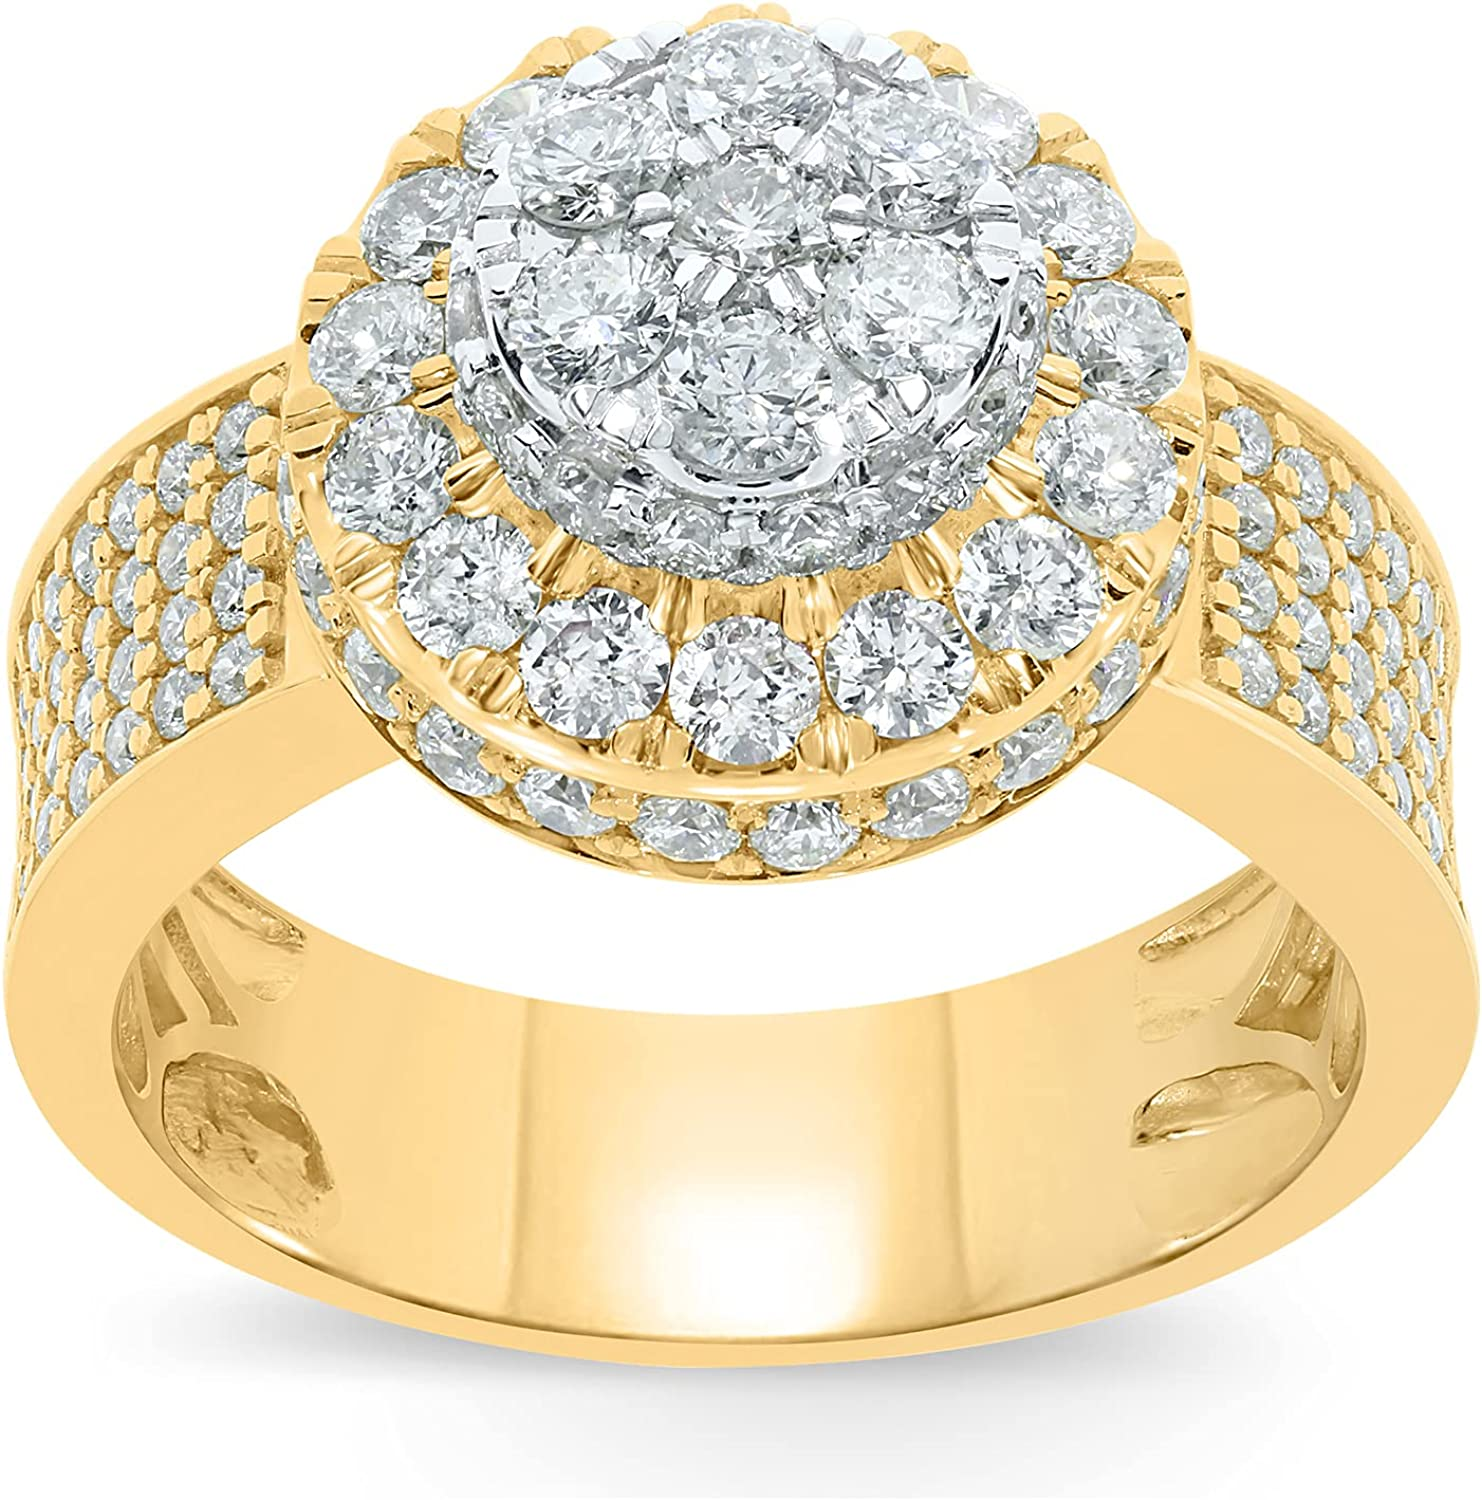 10k Yellow Gold 3 Carat Real Diamond Engagement Pinky Ring Band (3 cttw, H-I Color, SI2-I1)